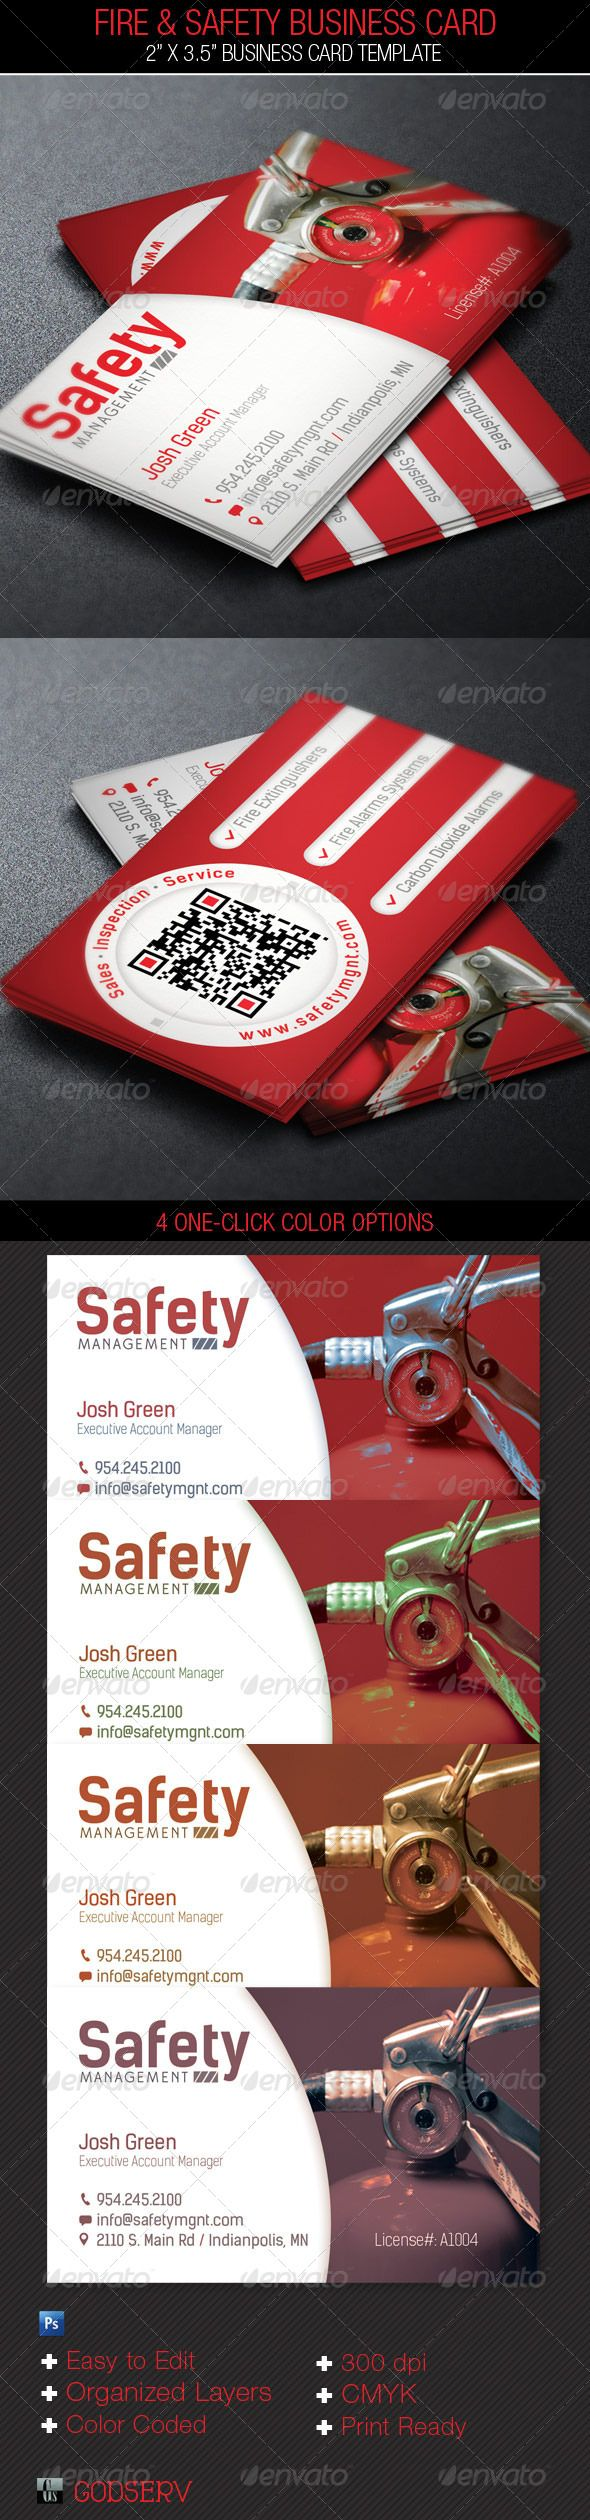 Fire safety service business card template tarjetas de fire safety service business card template tarjetas de presentacin tarjetas y ideas reheart Images